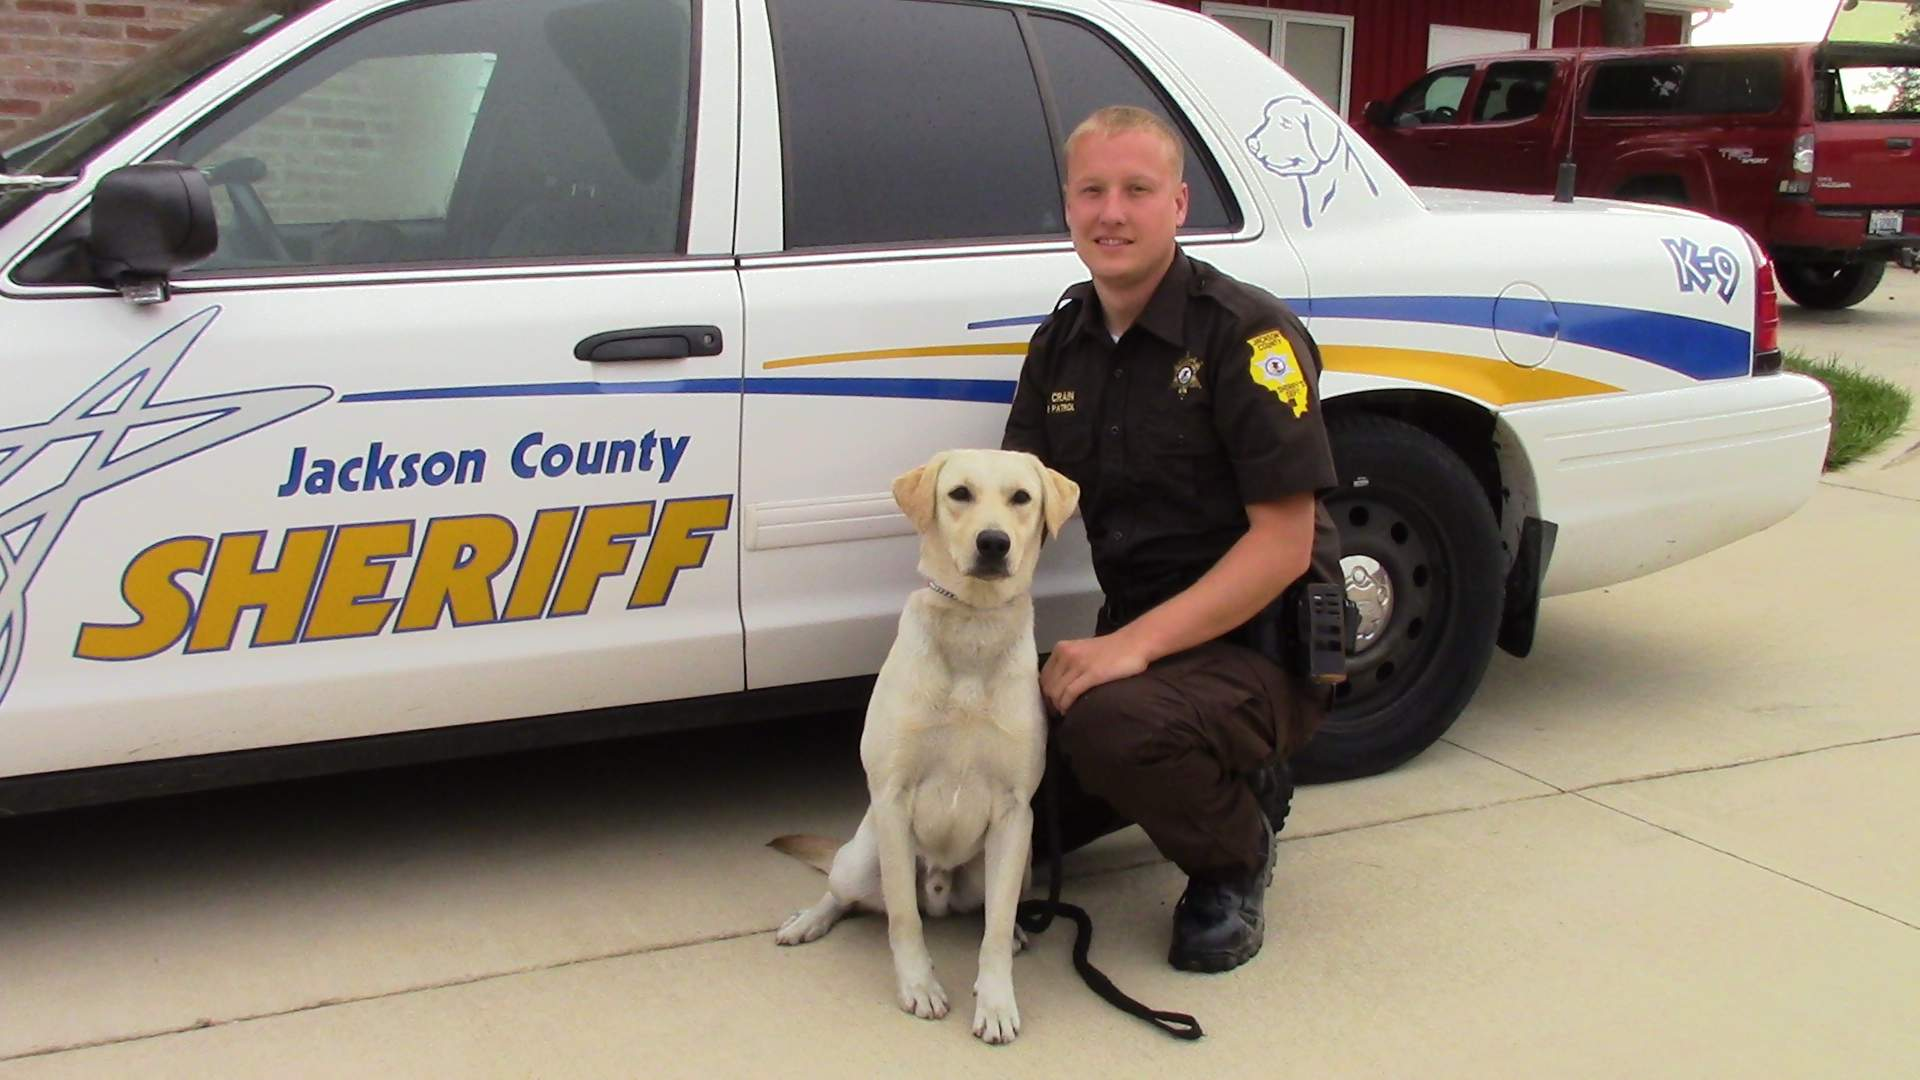 Pictured are Jackson County Brandon Crain and his K-9 partner, Gunner.